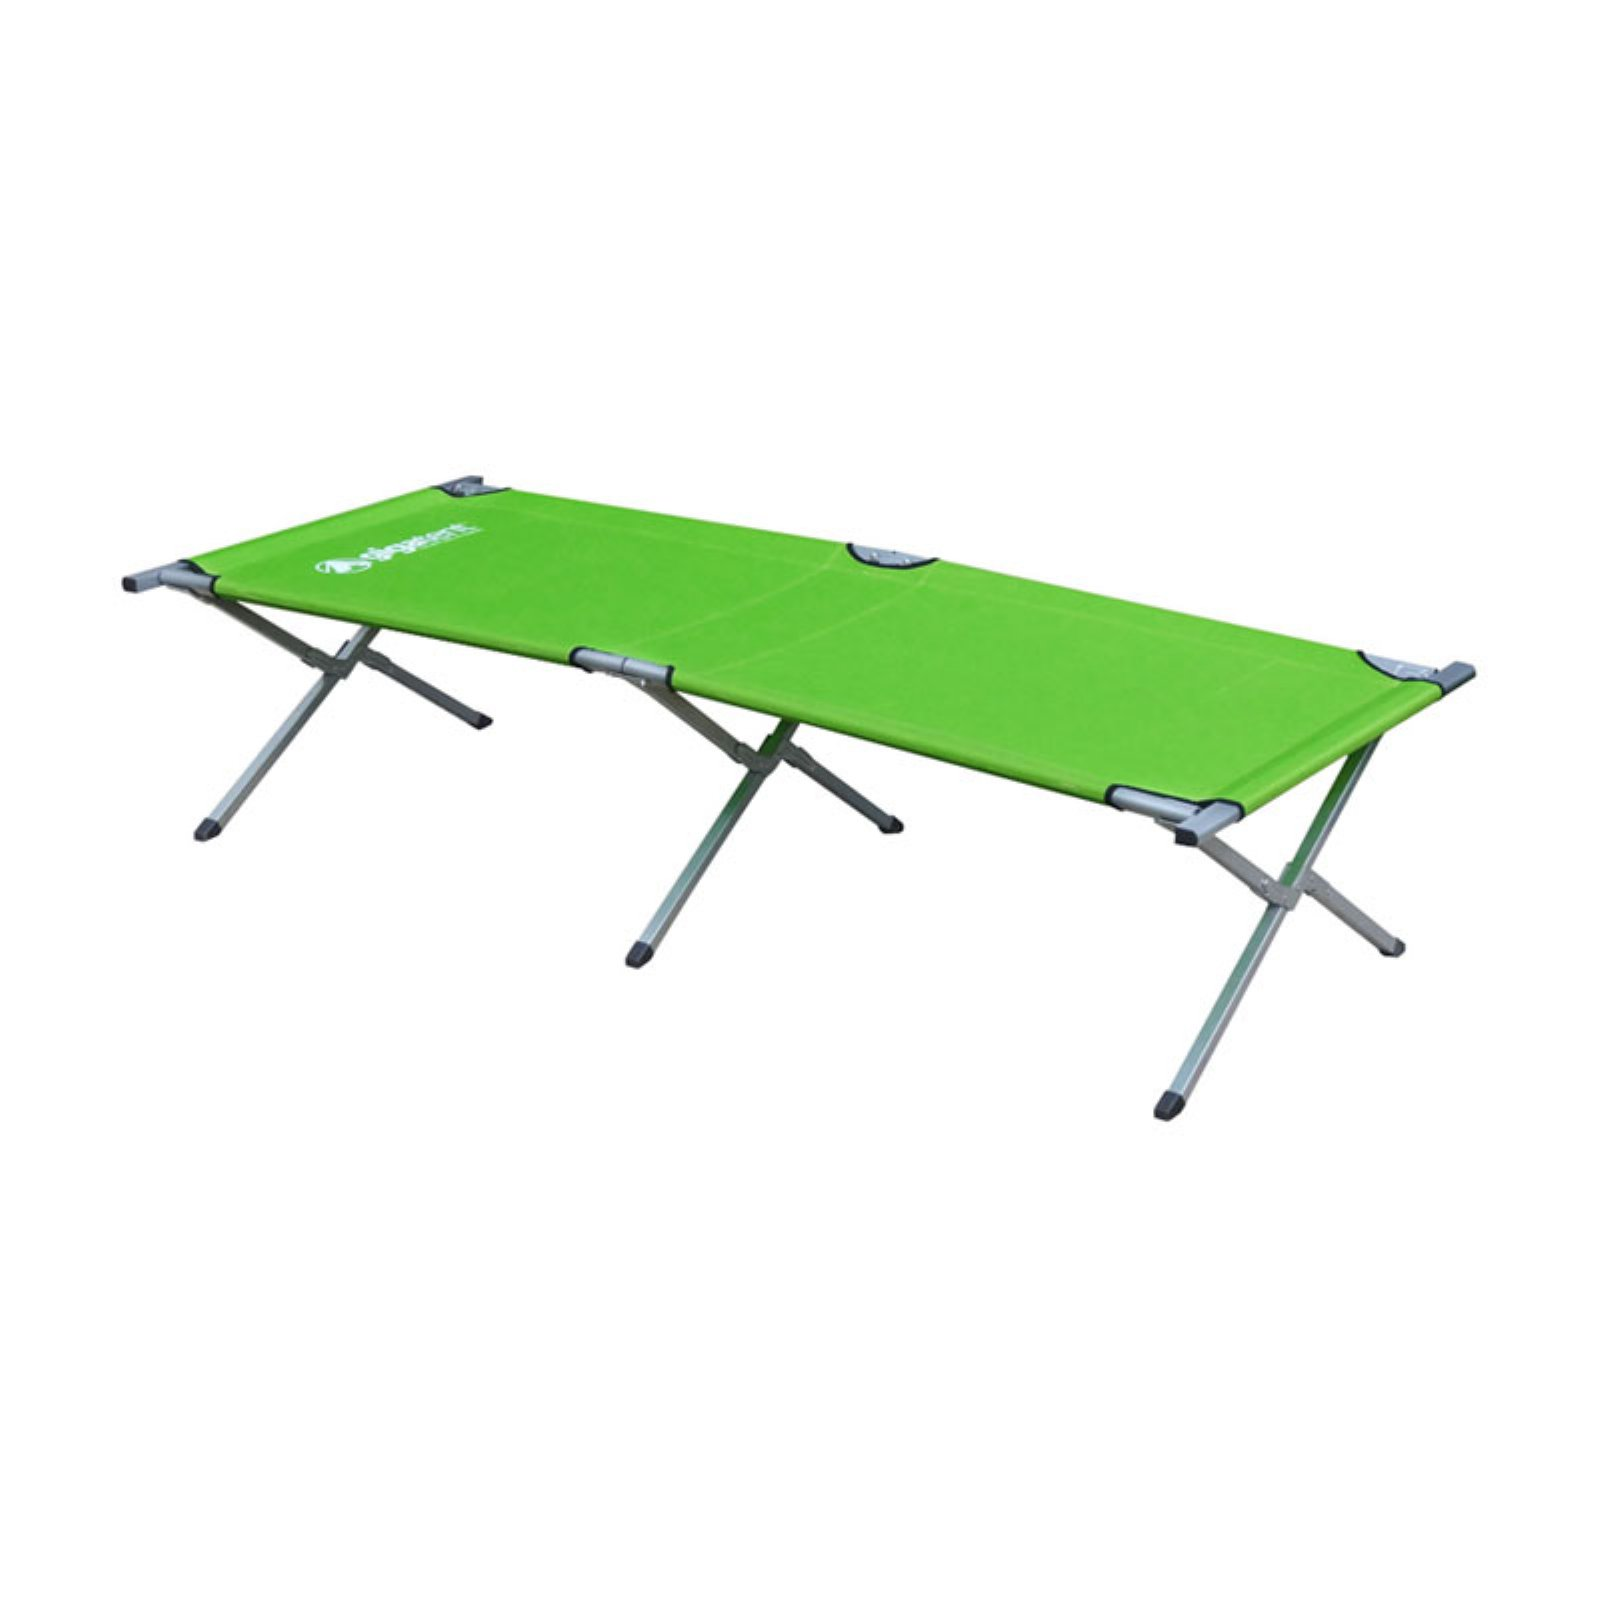 GigaTent Durango Military Cot by Generic